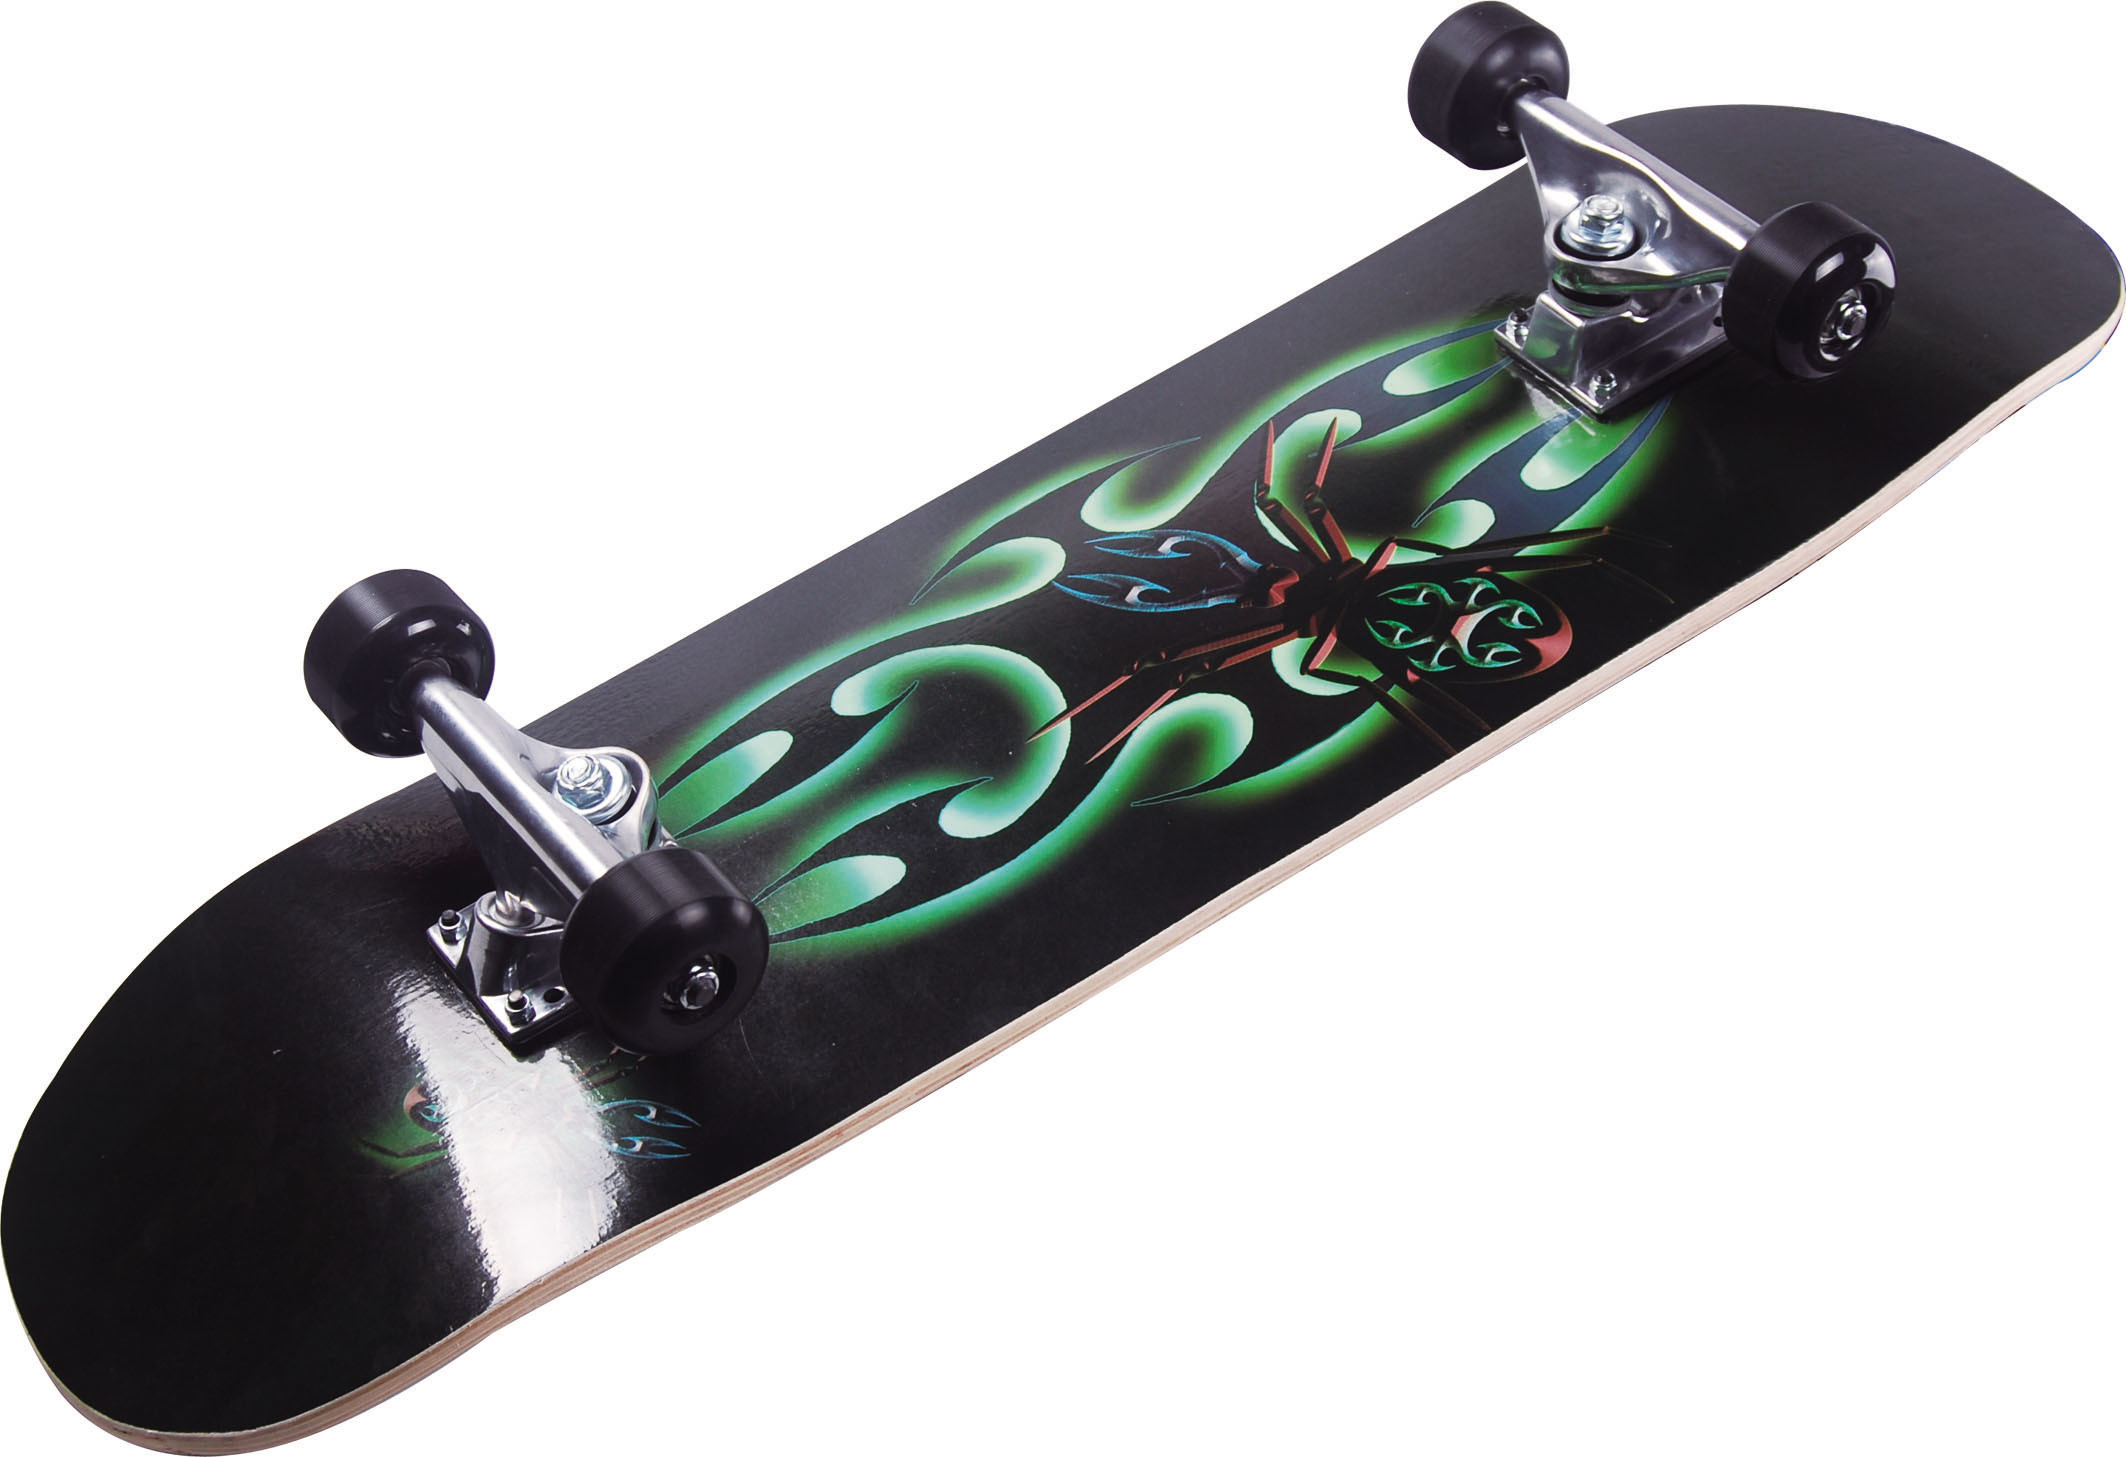 Which is your favorite set of wheels rollerblades skateboard